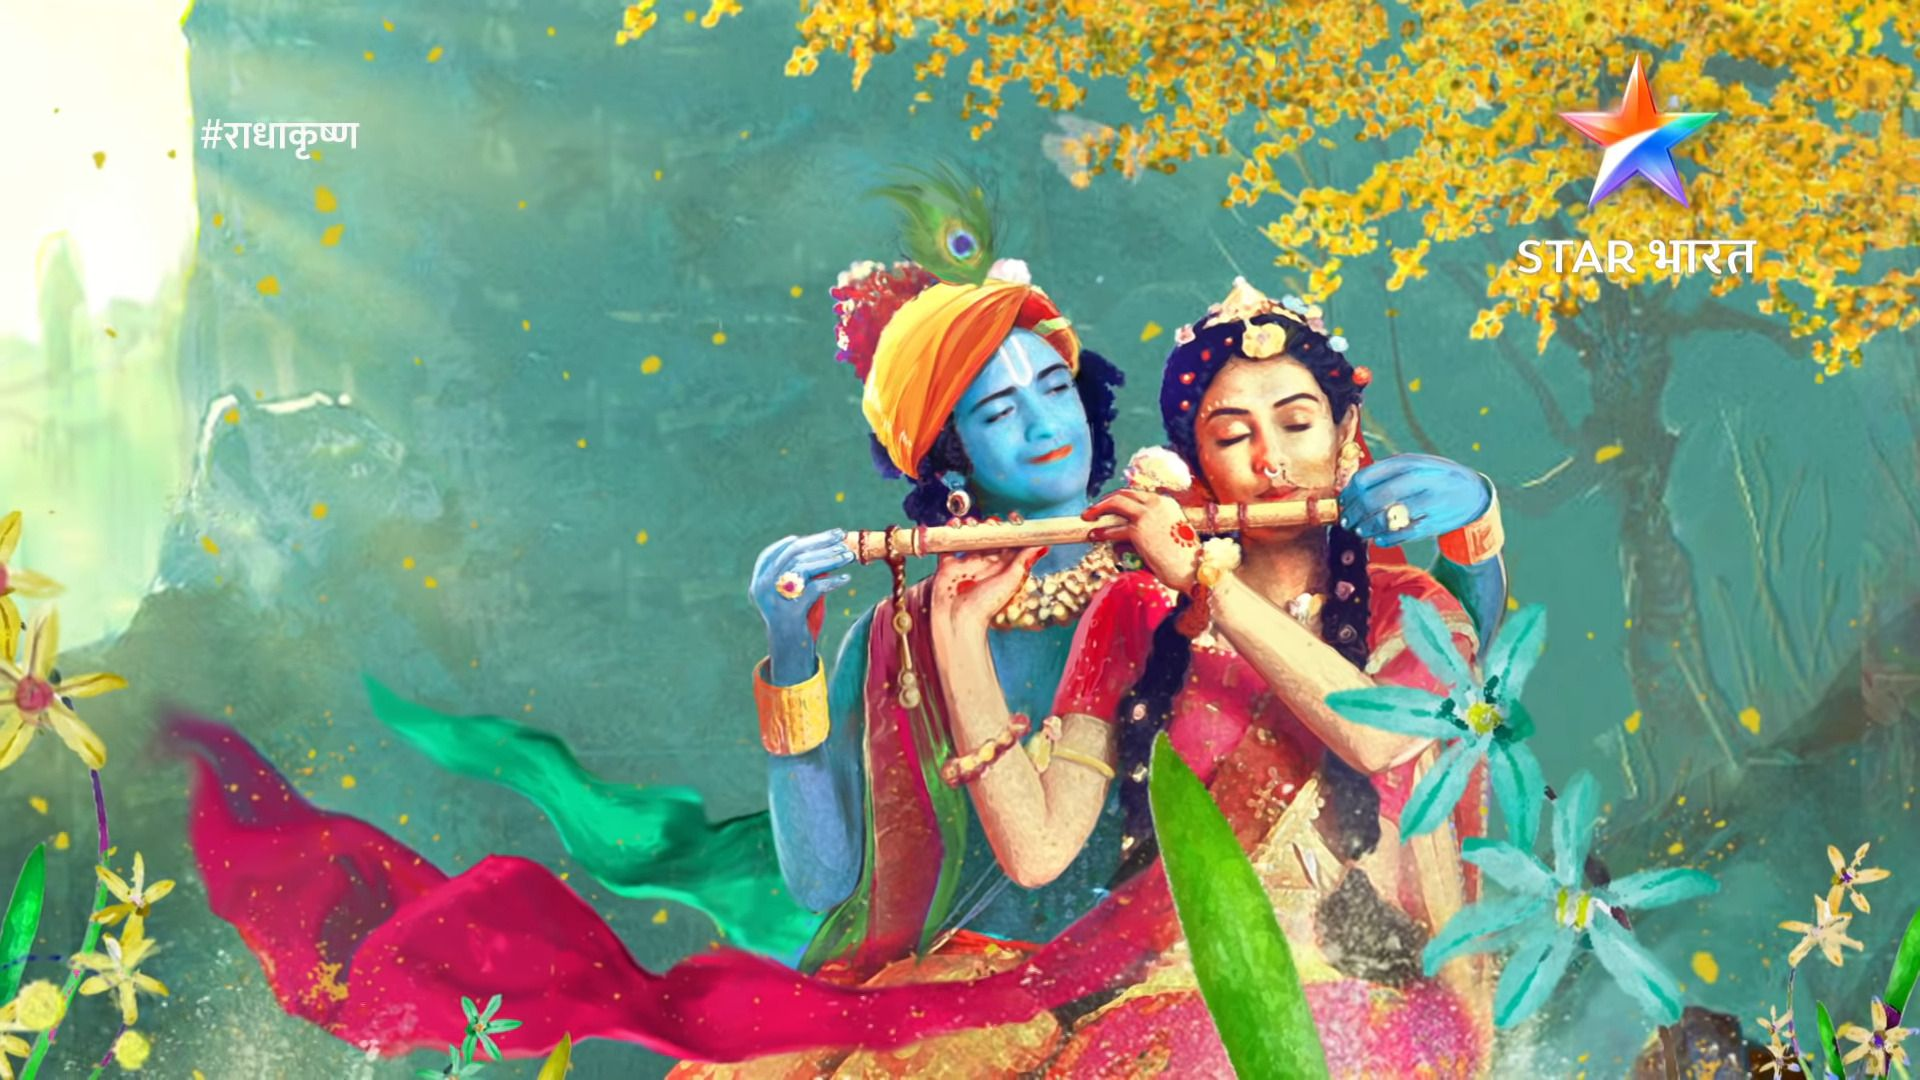 Radha Krishna Star Bharat Serial Hd Wallpapers 1080p Krishna